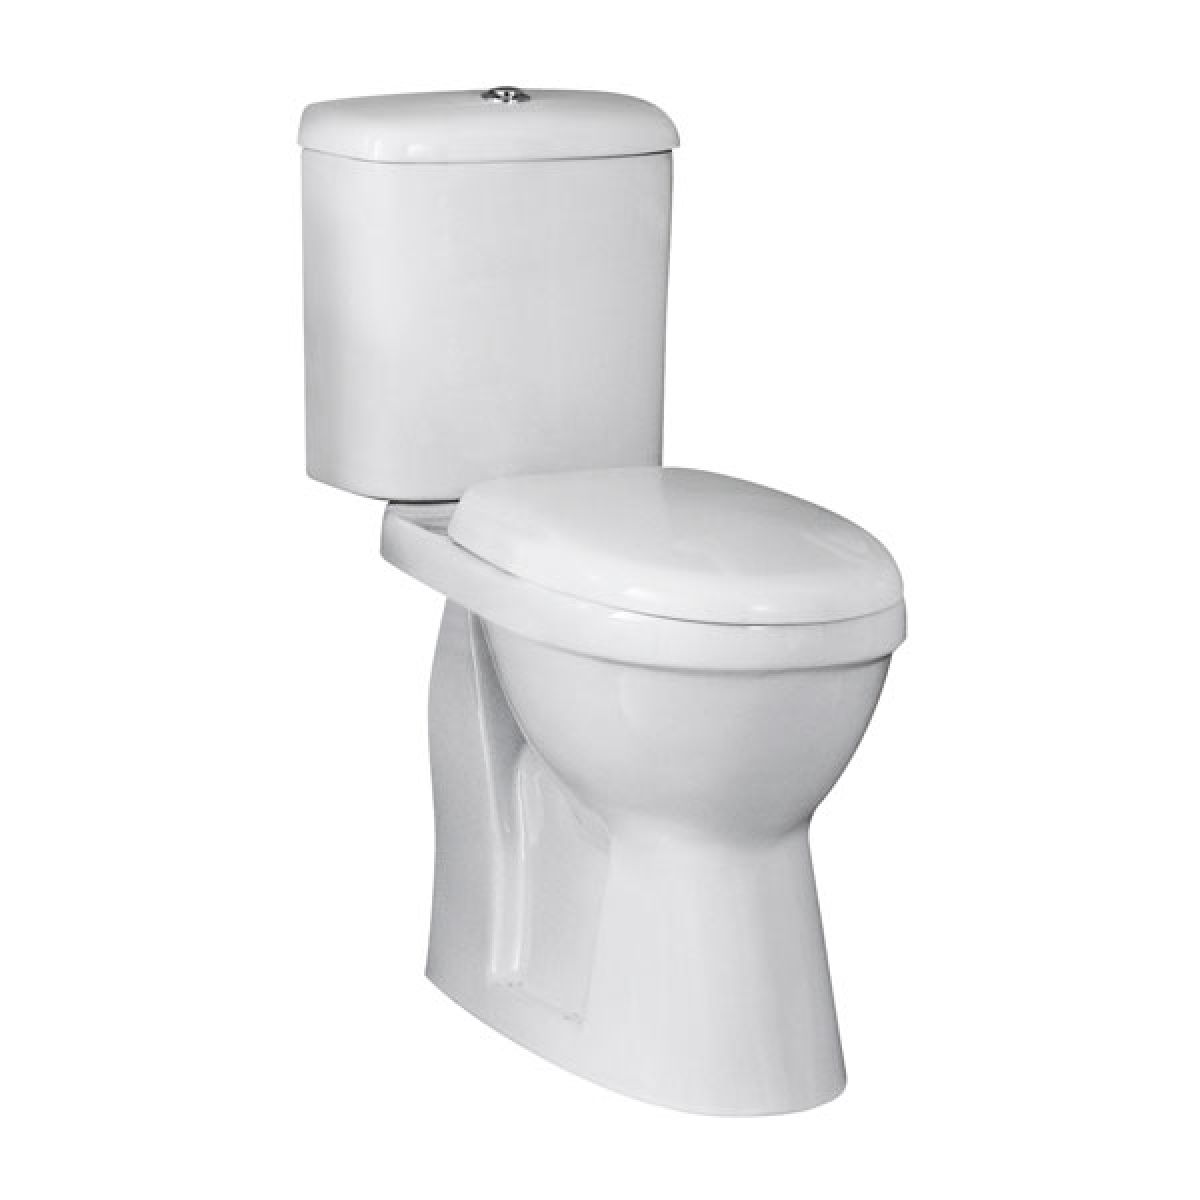 Premier Ivo Comfort Height Close Coupled Toilet with Standard Seat